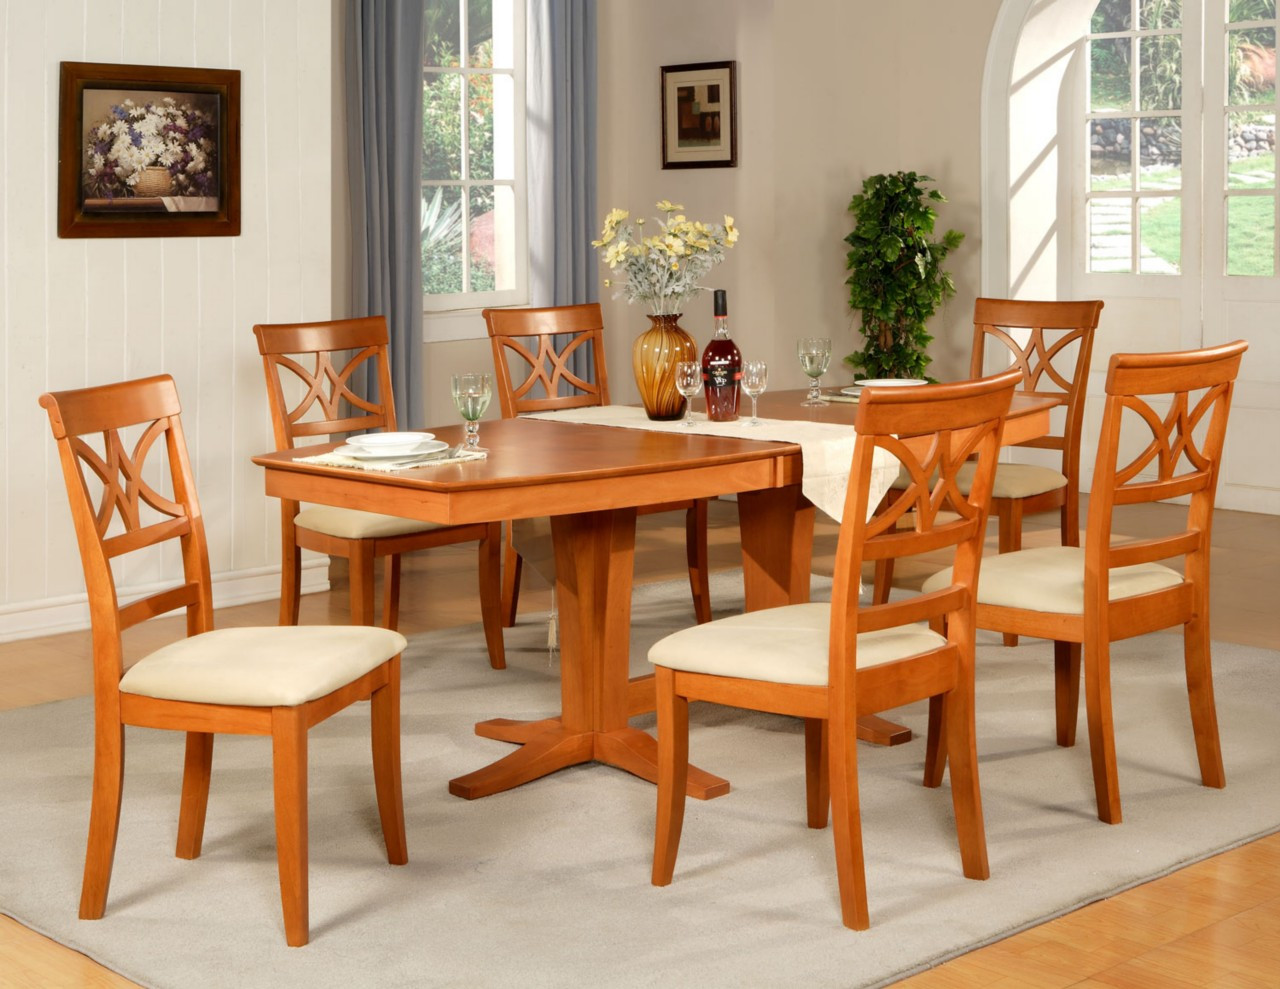 Best ideas about Wood Dining Room Table . Save or Pin 7PC DINING ROOM SET TABLE AND 6 WOOD SEAT CHAIRS IN LIGHT Now.